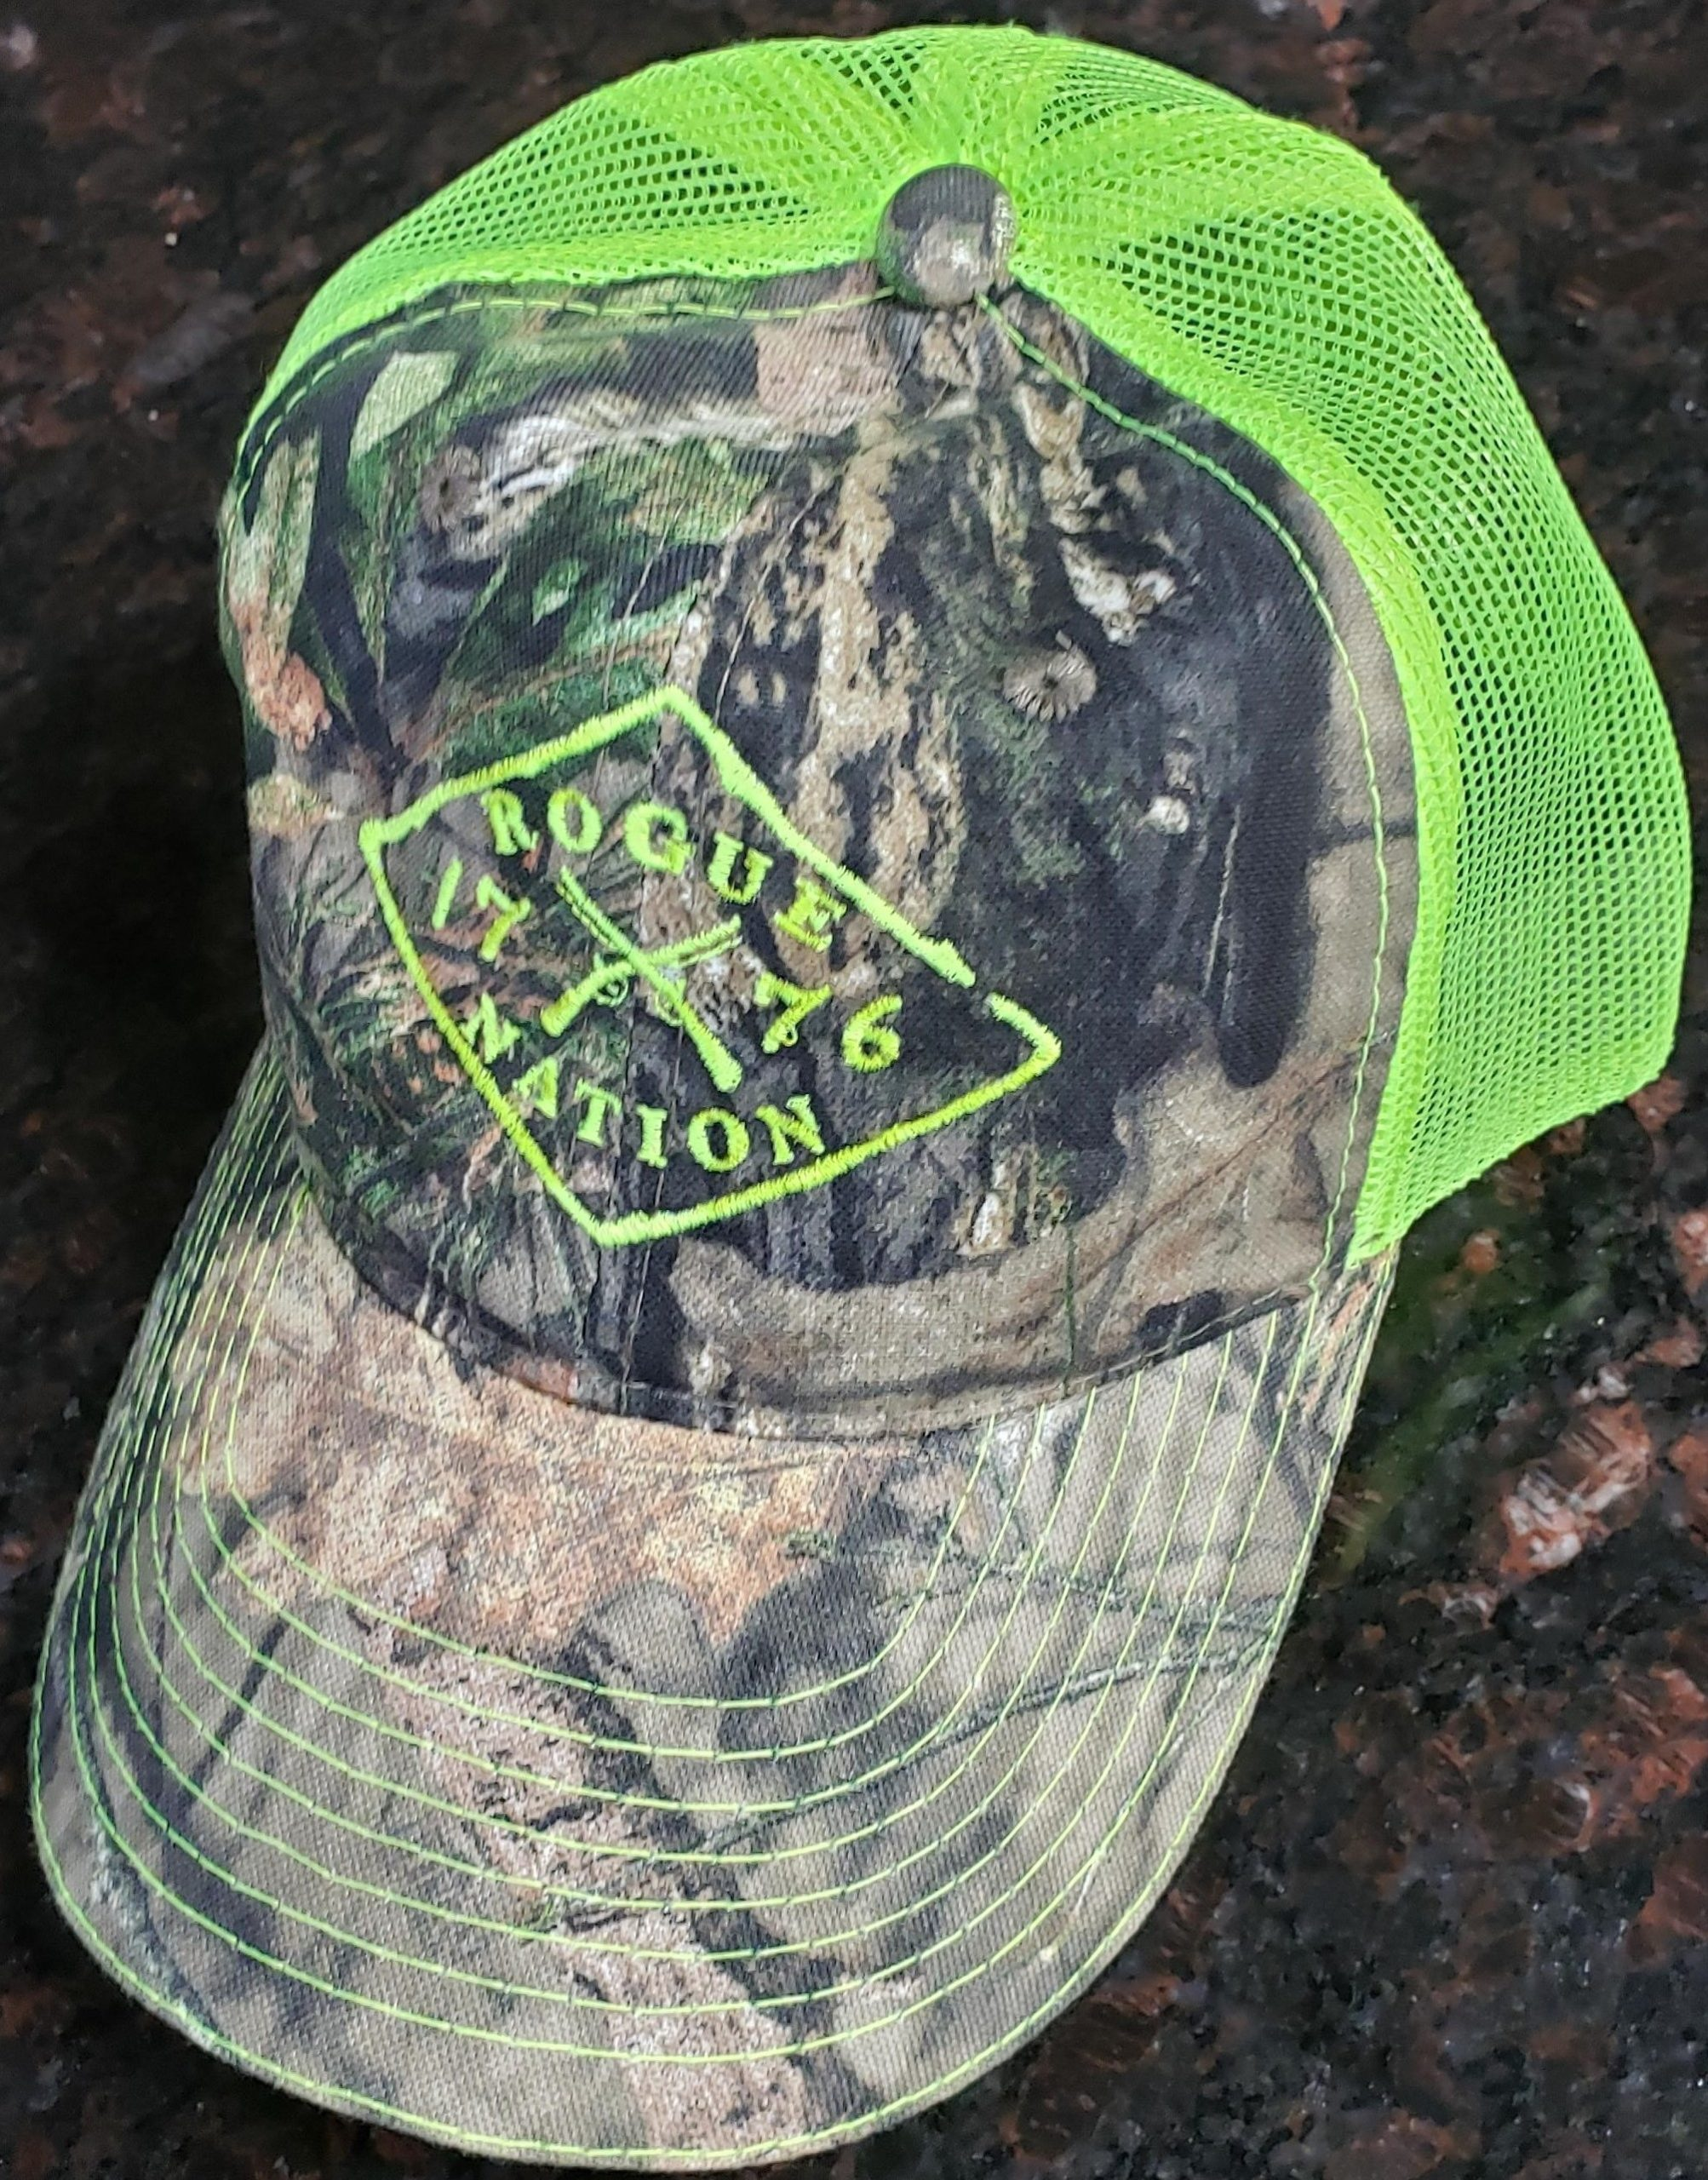 Mossy Oak Country Neon Yellow Hat with the Rogue Nation 1776 logo